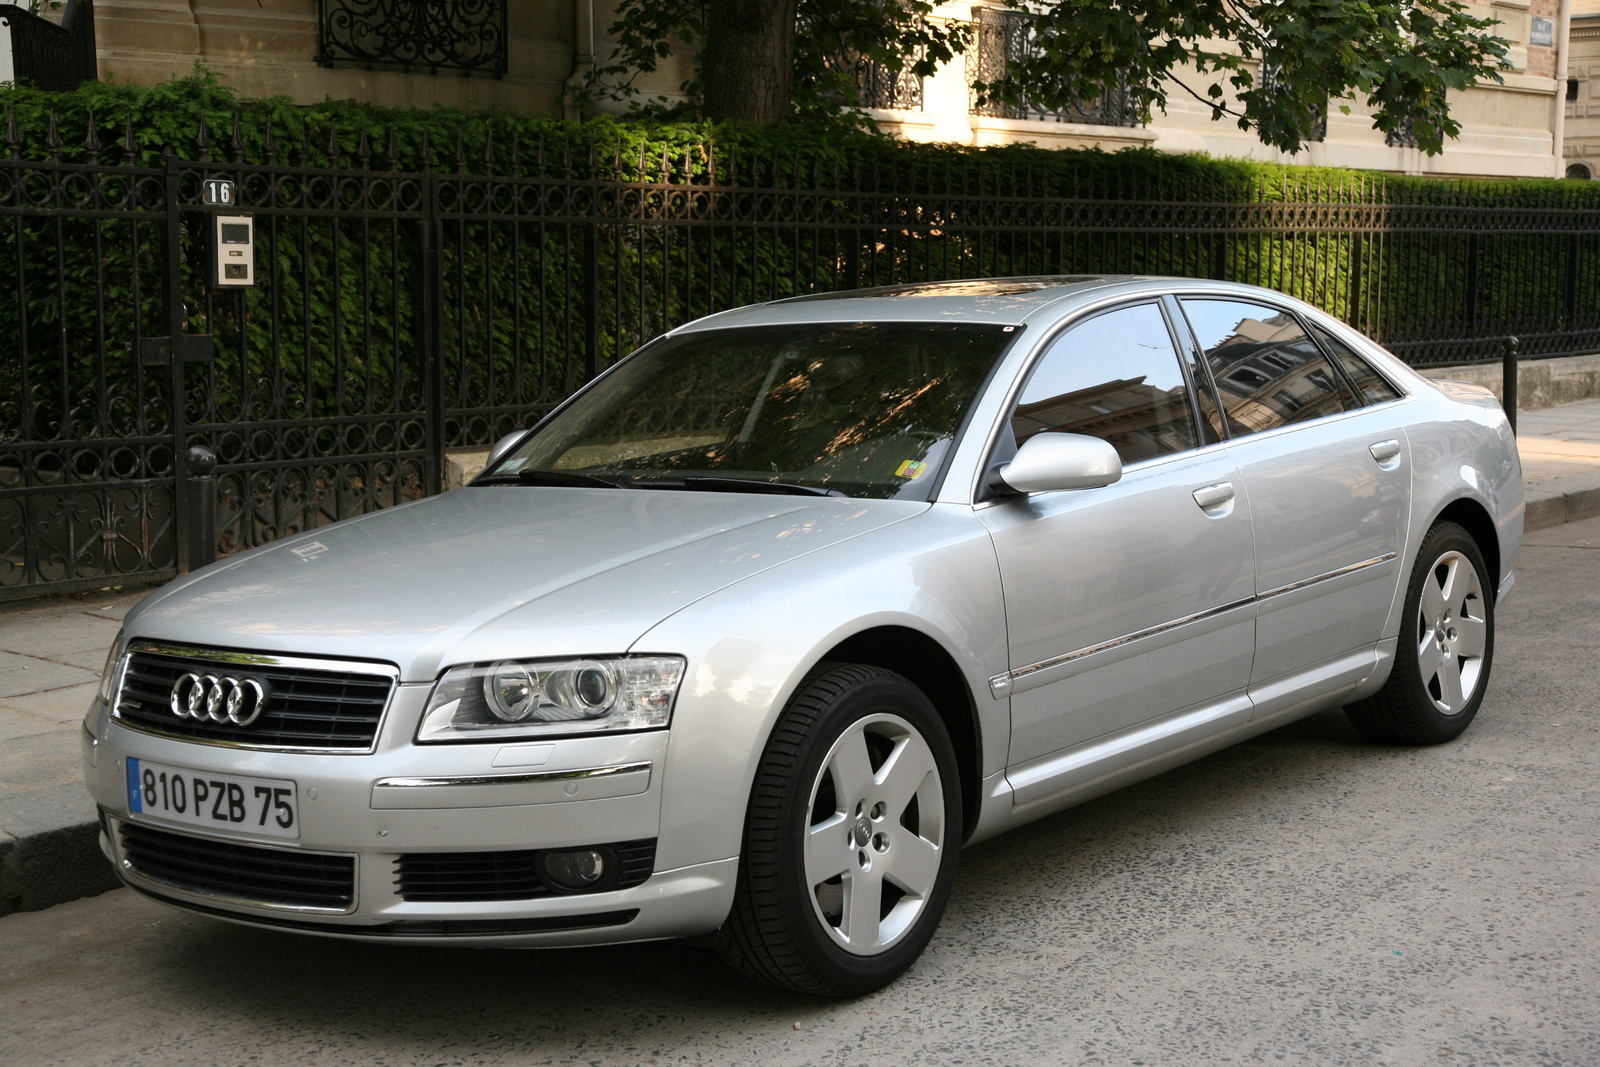 hight resolution of 2004 audi a8 overview